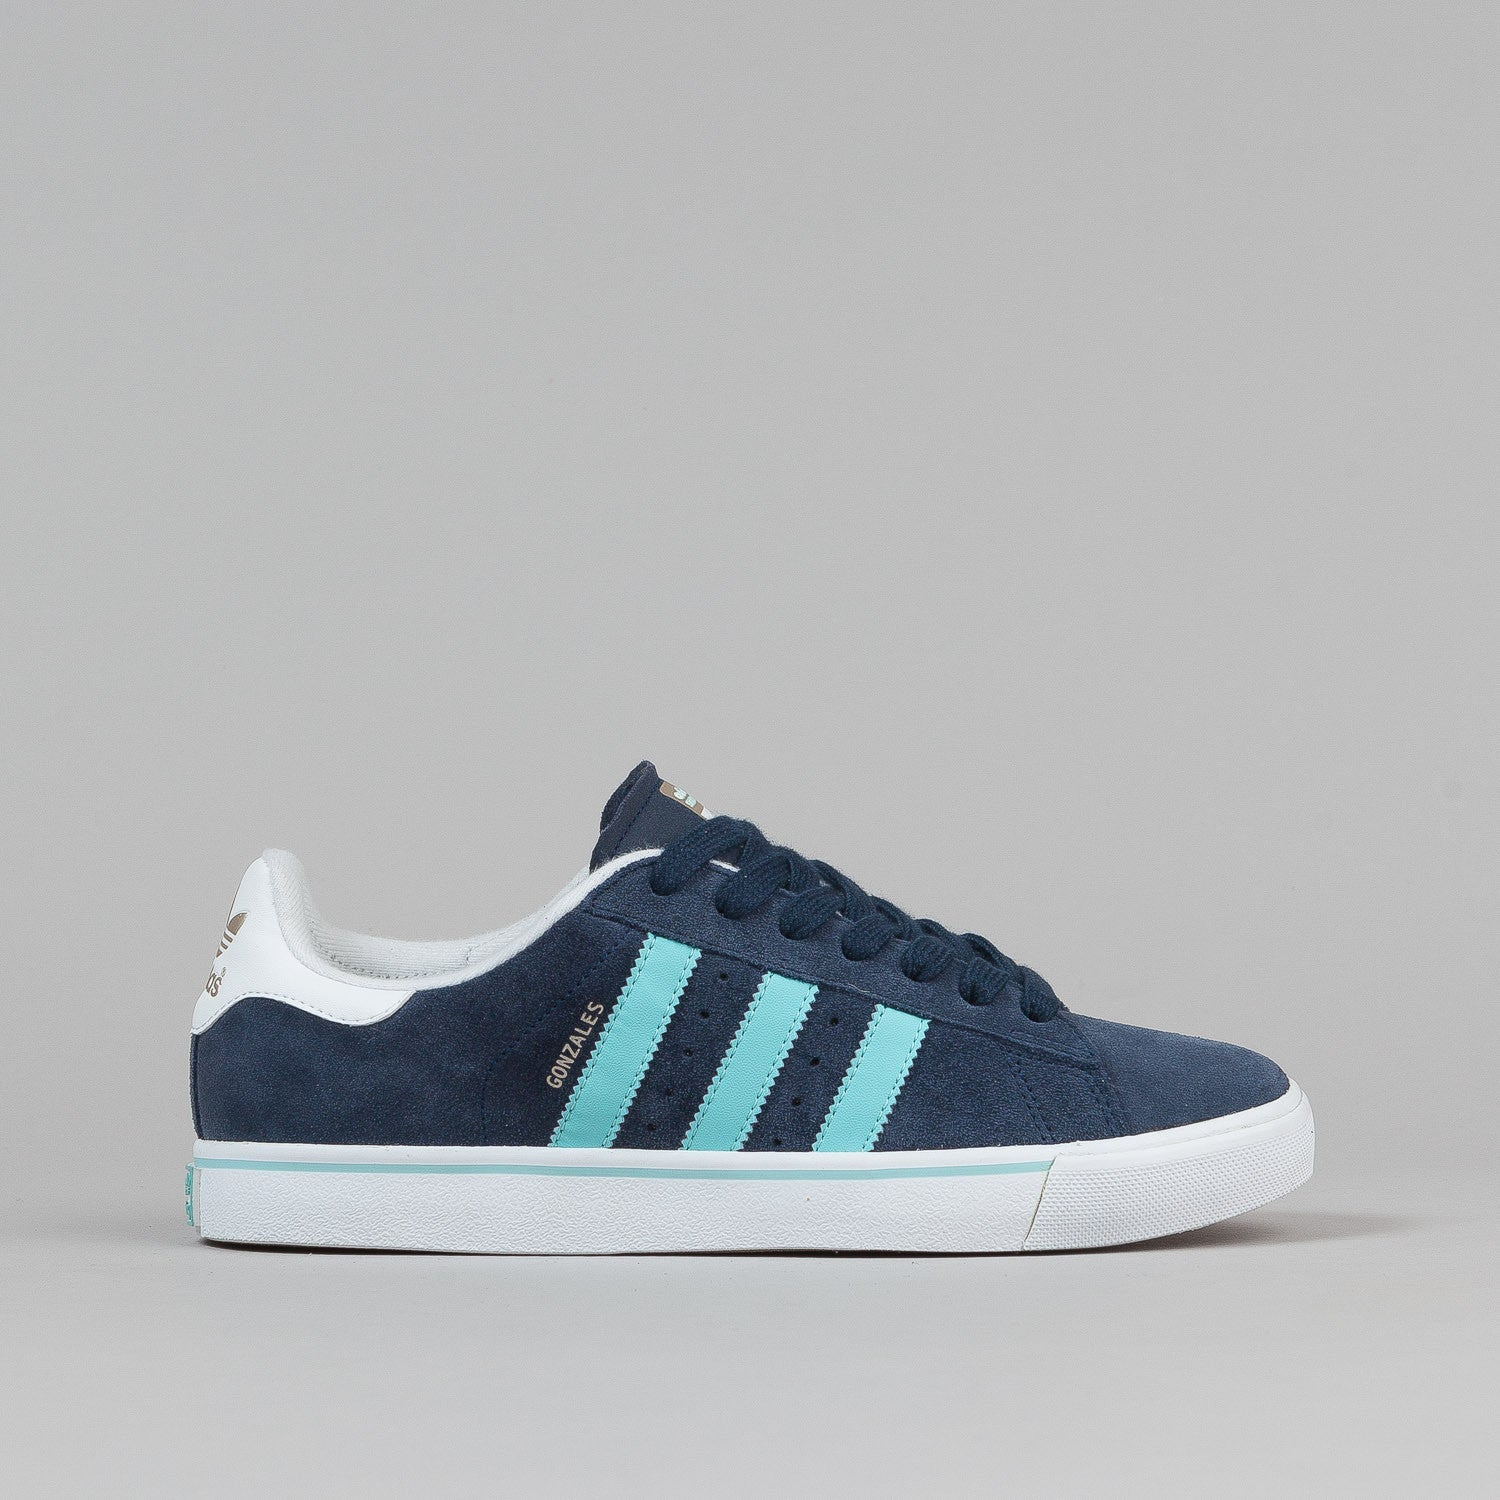 Adidas Campus Vulc 'Gonz' Shoes